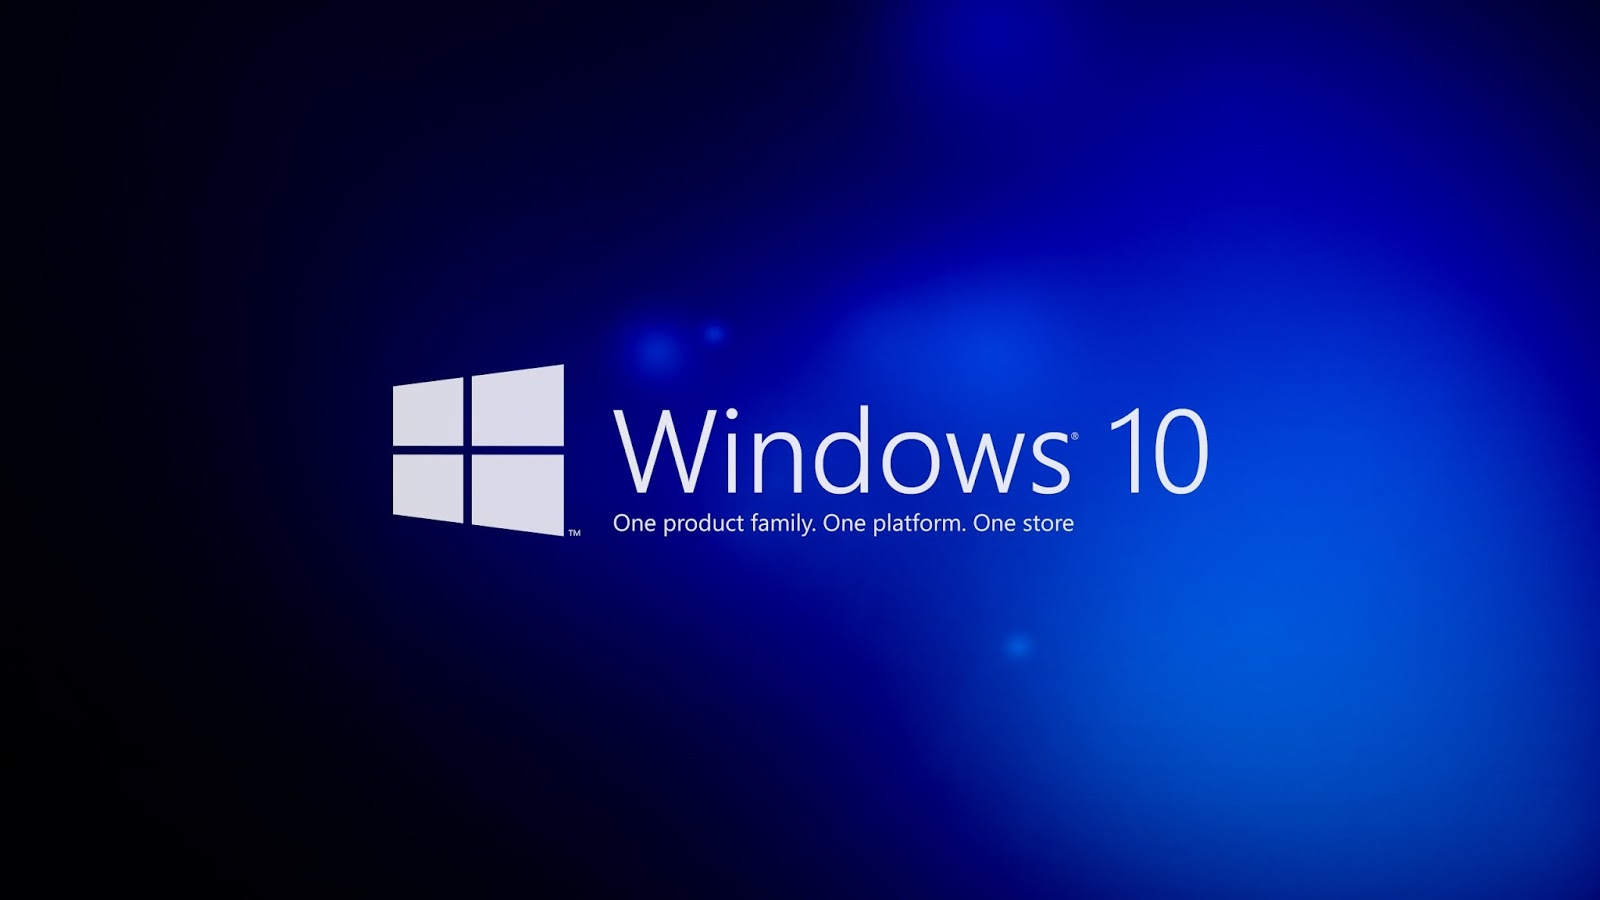 Windows 10 pro build 10240 iso 32 64 bit free download for Window 10 pro